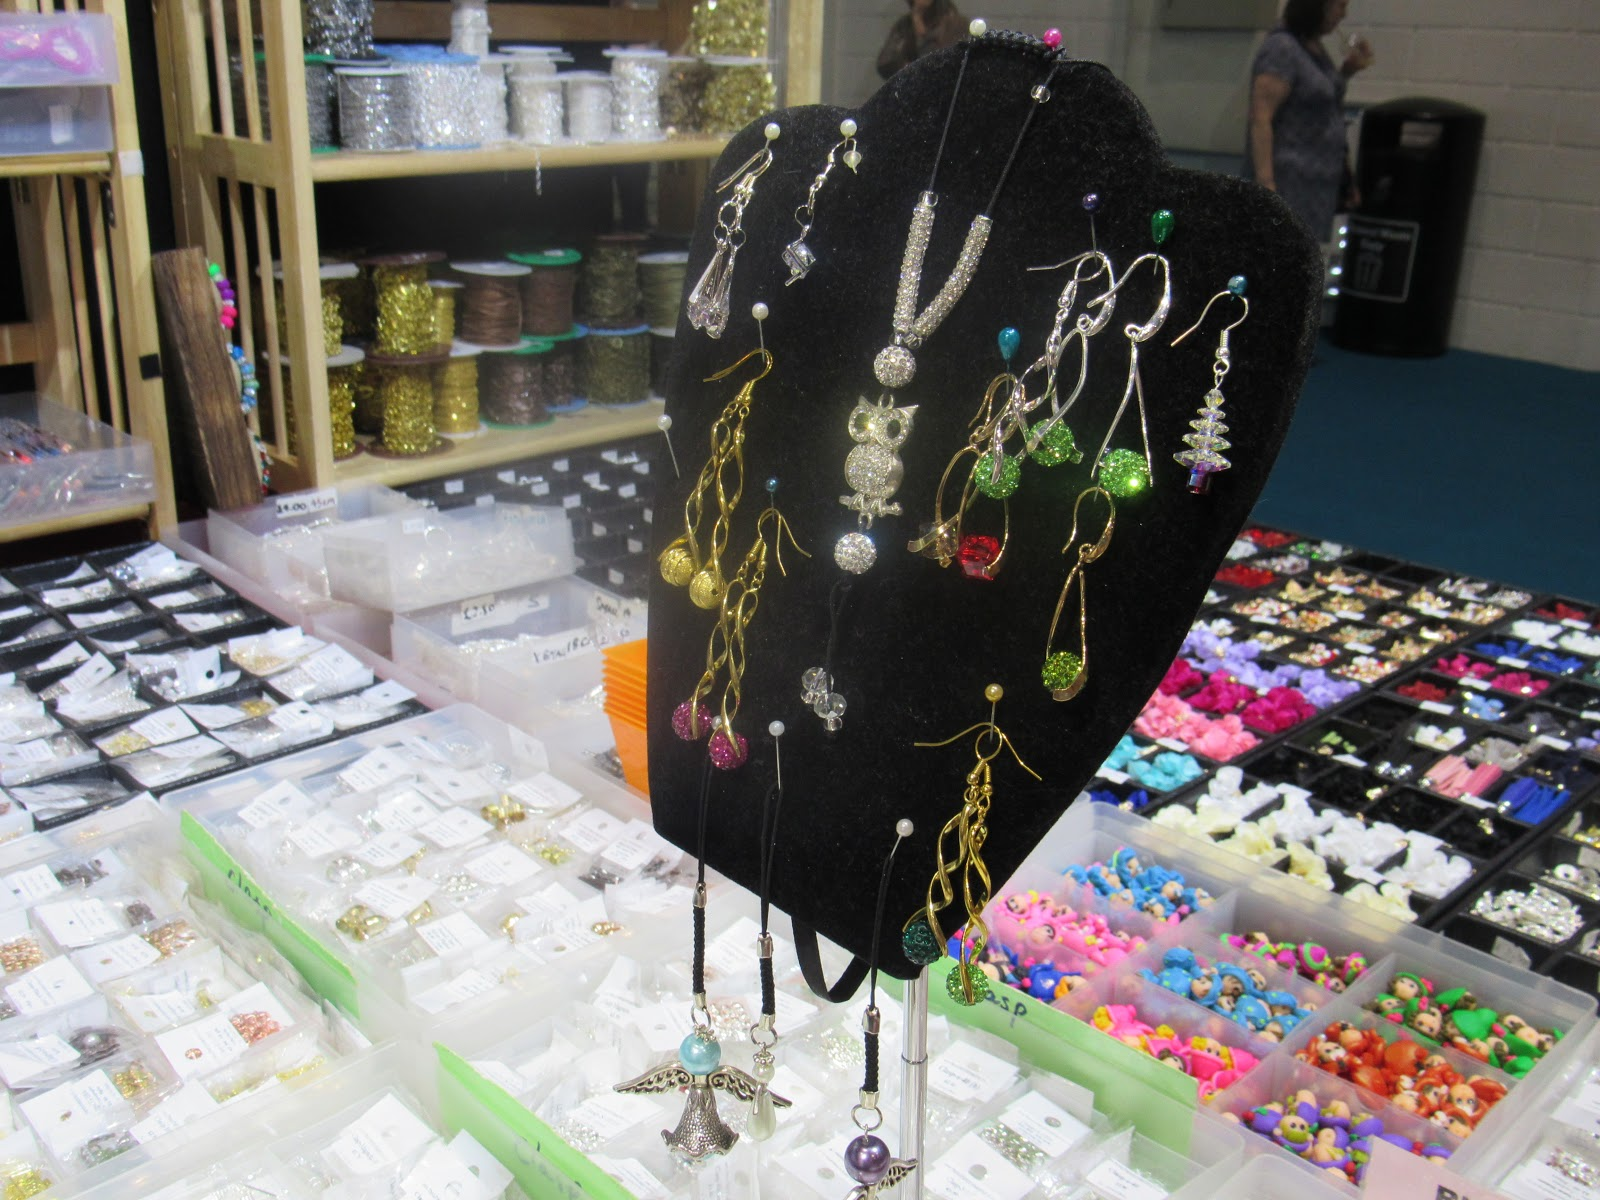 The Creative Craft Show Highlights & Photo Gallery